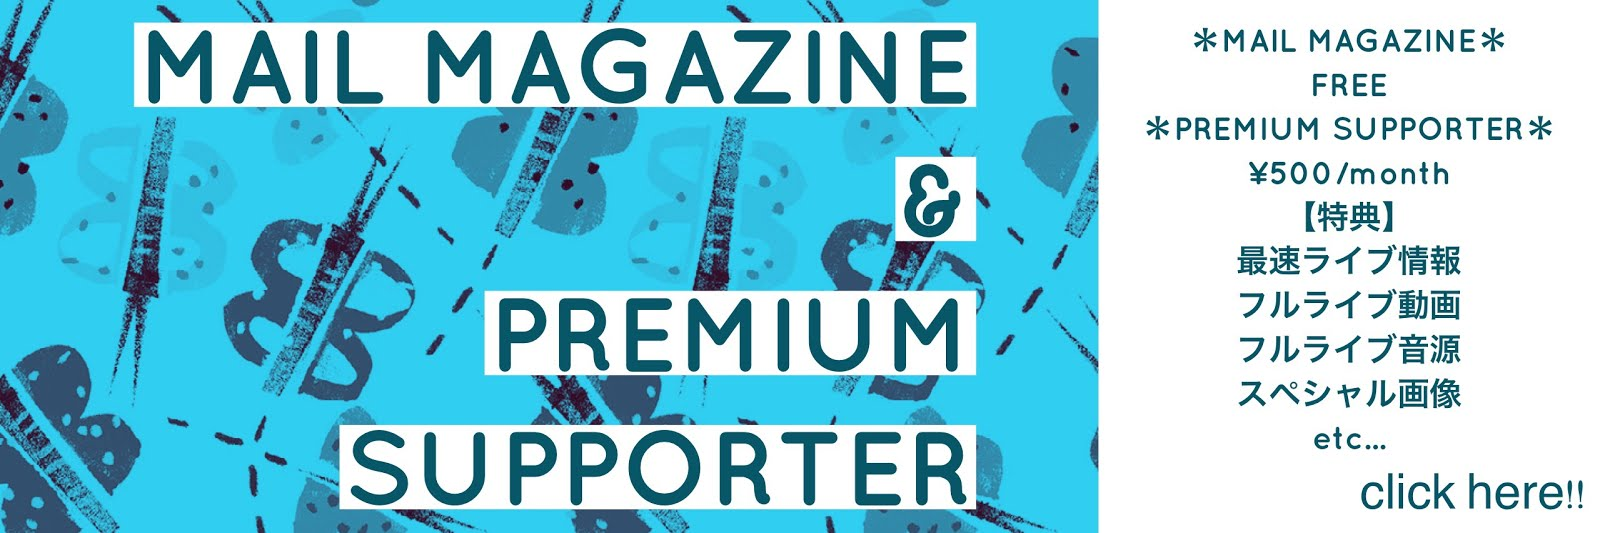 MAIL MAGAZINE&PREMIUM SUPPORTER